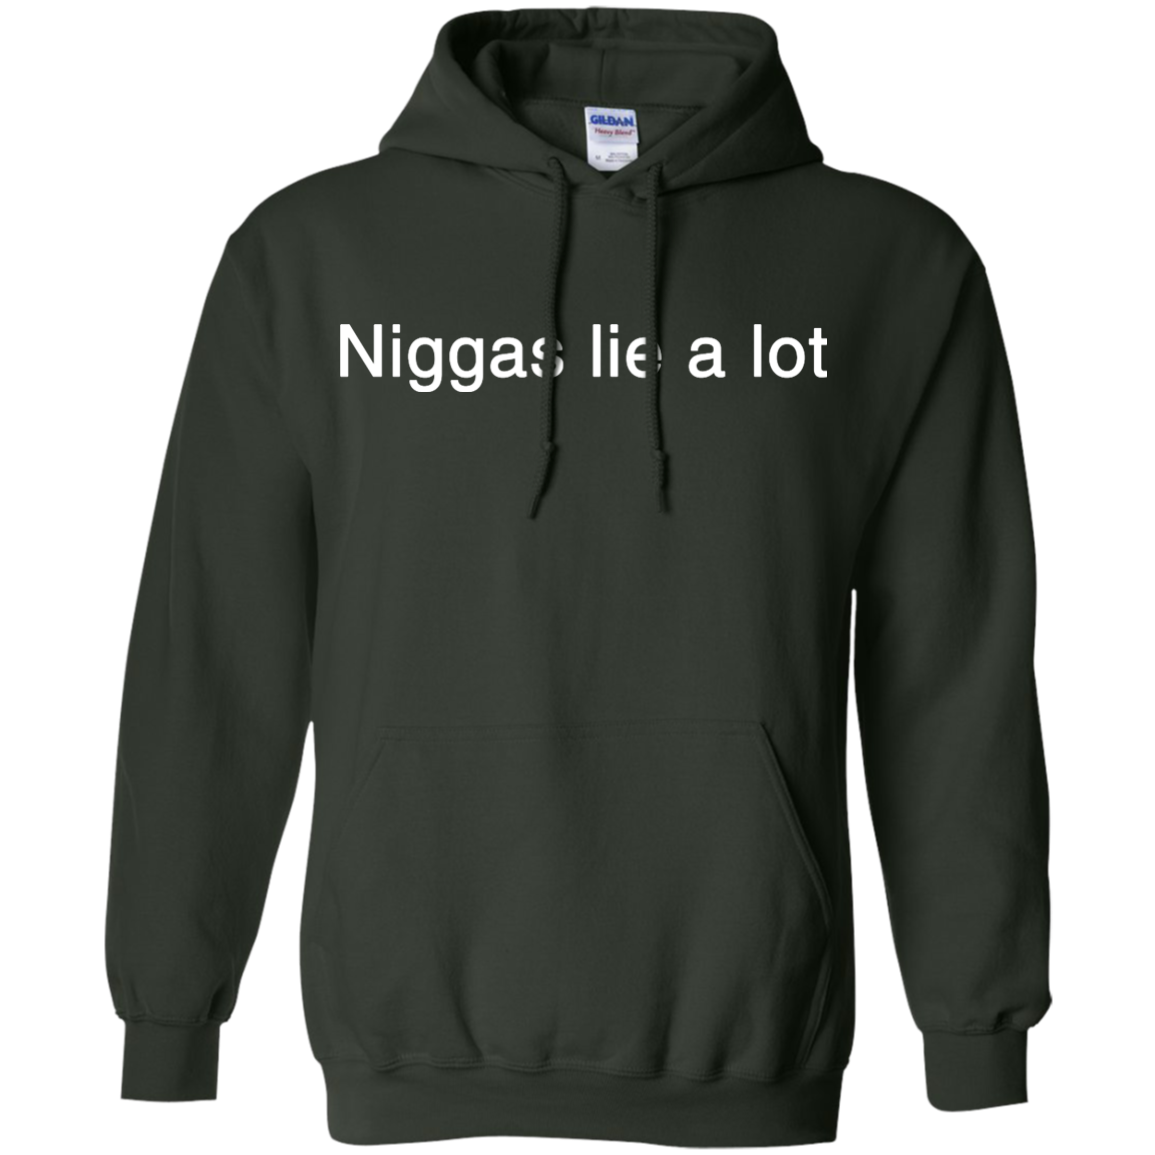 image 185px Yesjulz Shirt: Niggas lie a lot T shirt, Hoodies, Tank top